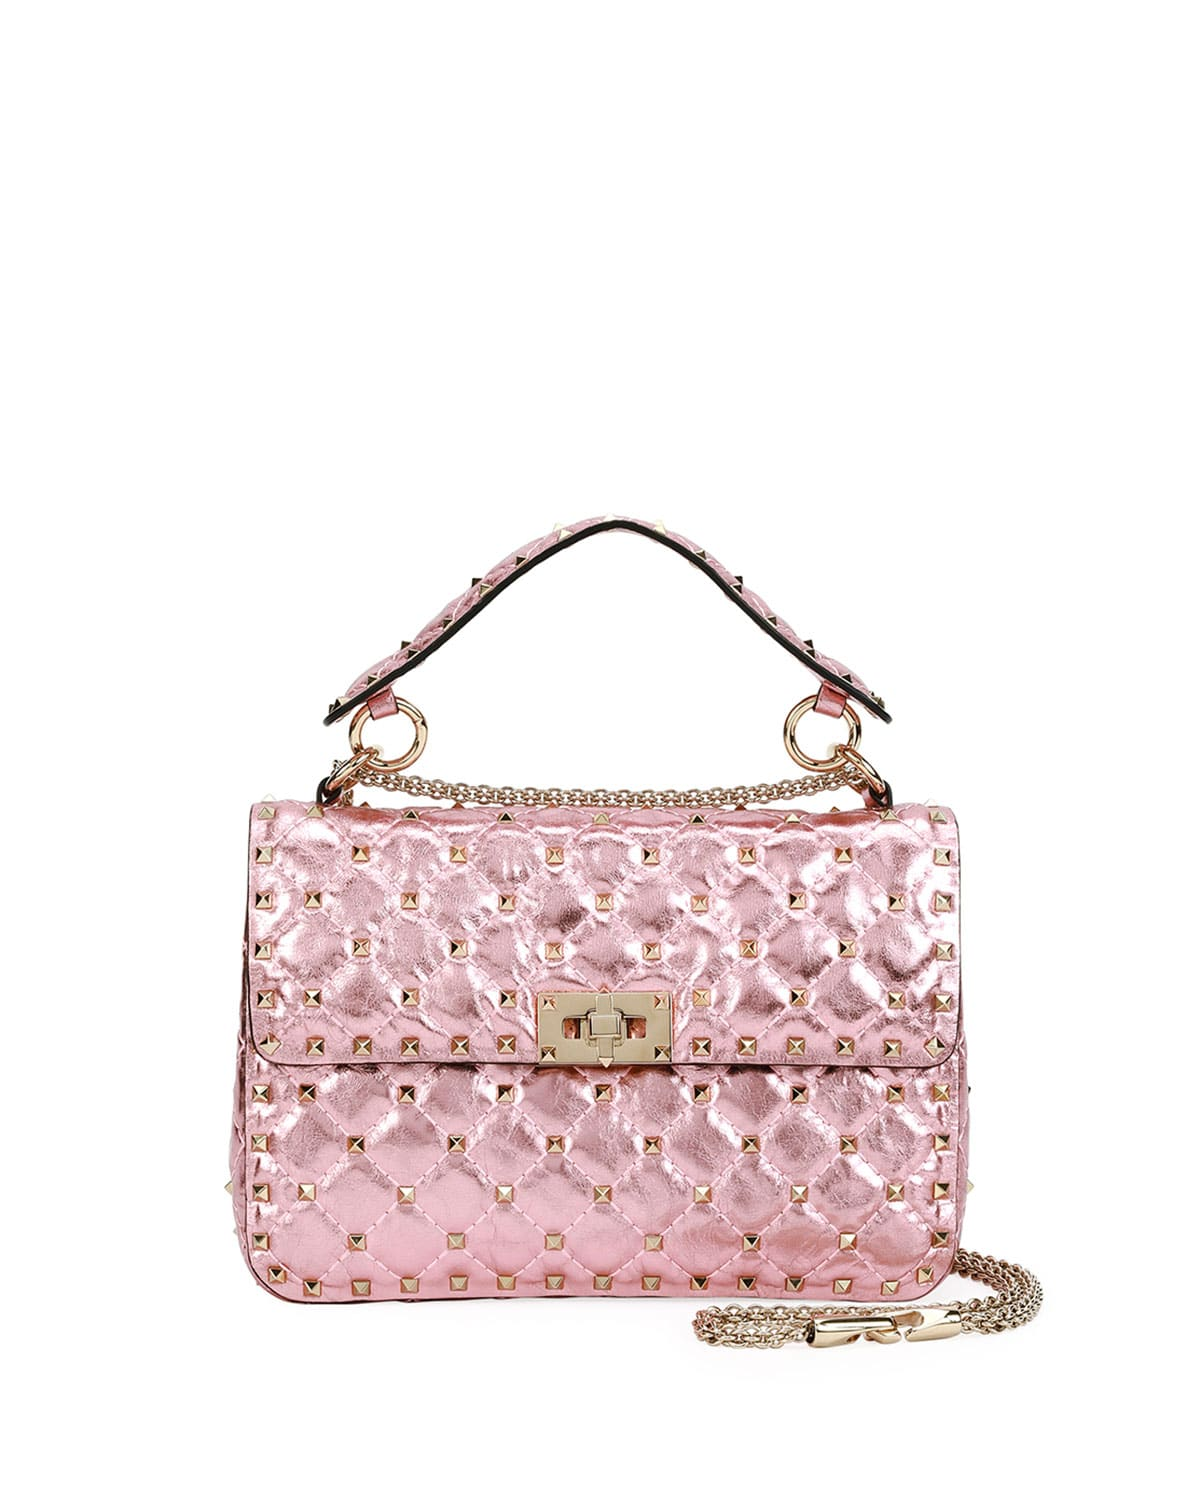 Valentino Fall/Winter 2017 Bag Collection Includes The ...